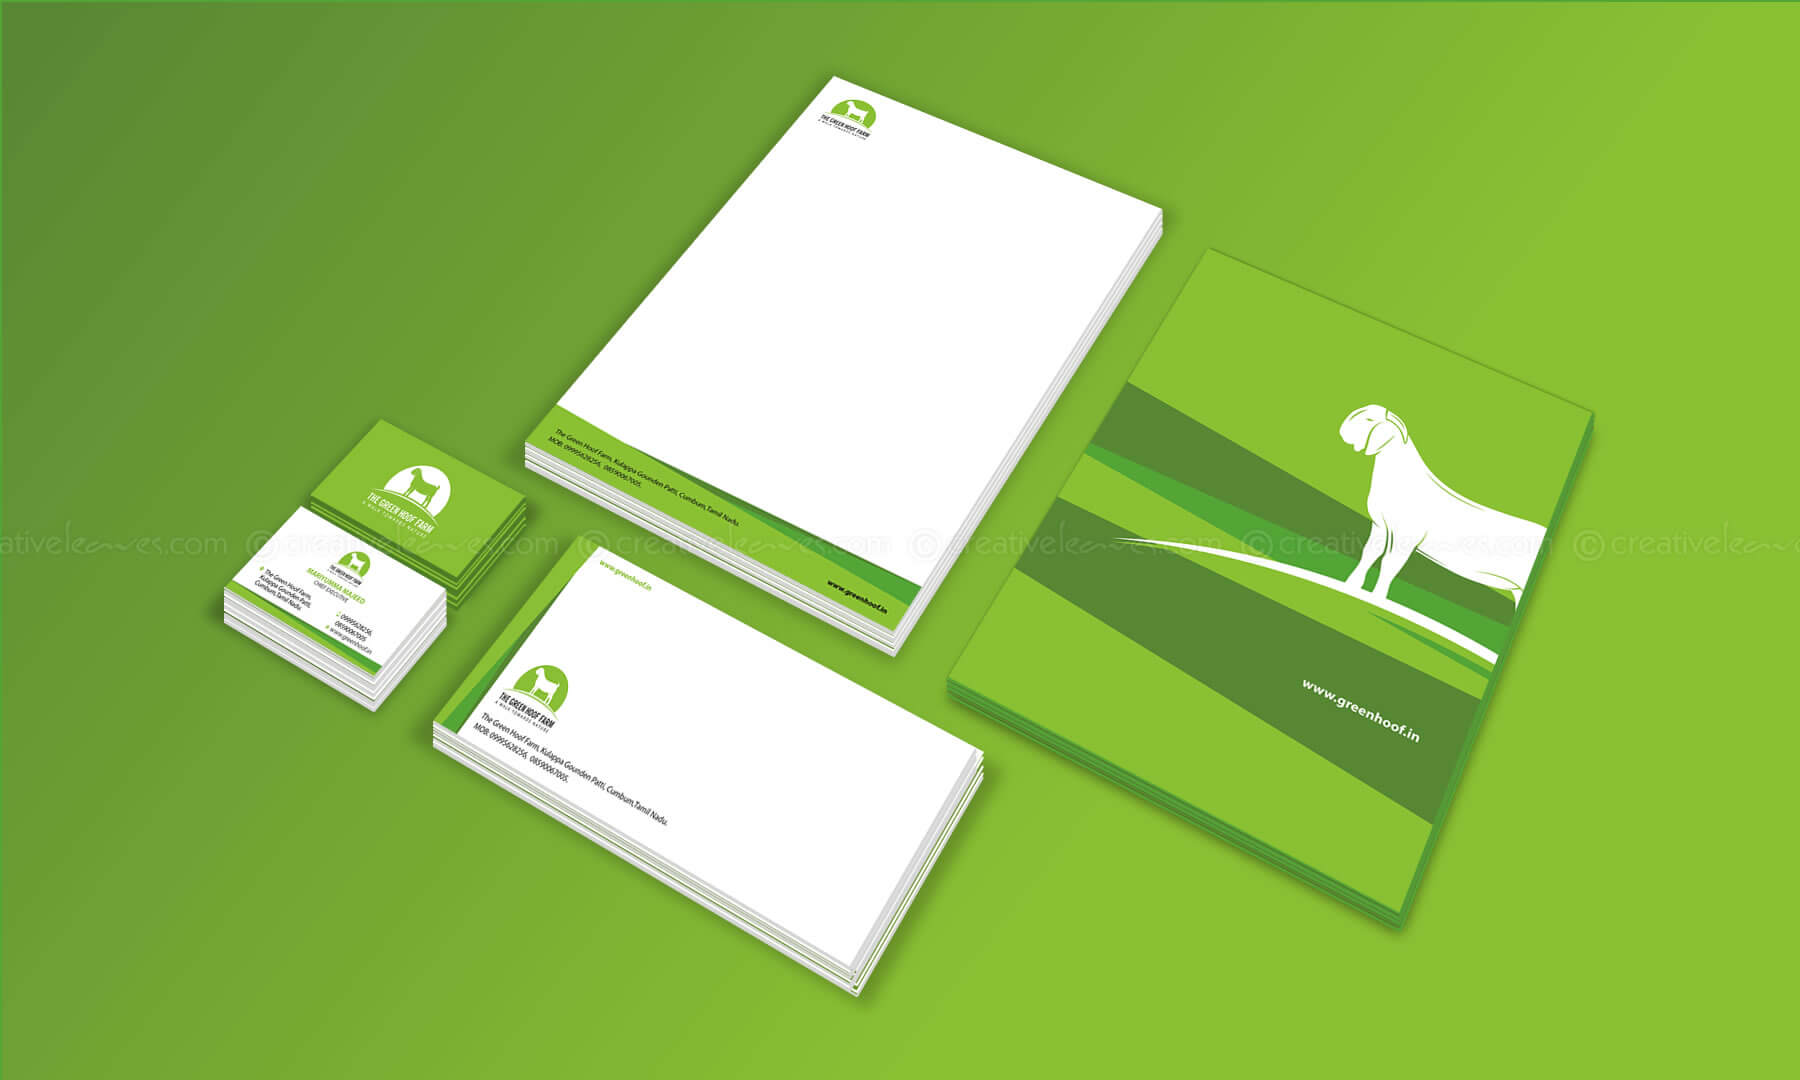 The Green Hoof Farm branding designed by Kerala freelance logo designer